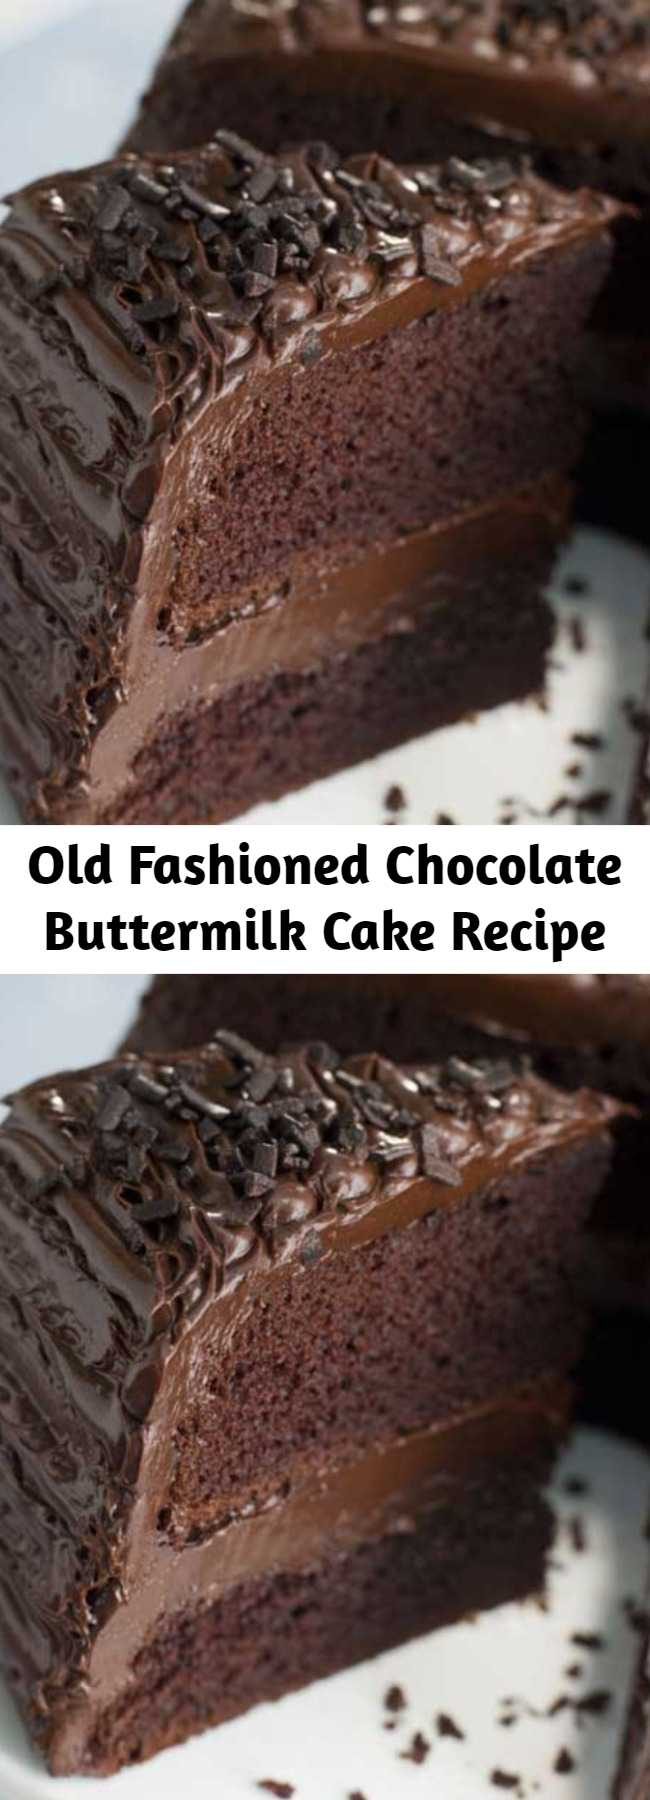 Old Fashioned Chocolate Buttermilk Cake Recipe - The perfect recipe for an old-fashioned chocolate buttermilk cake that is so moist that your guests will think it came from a bakery!